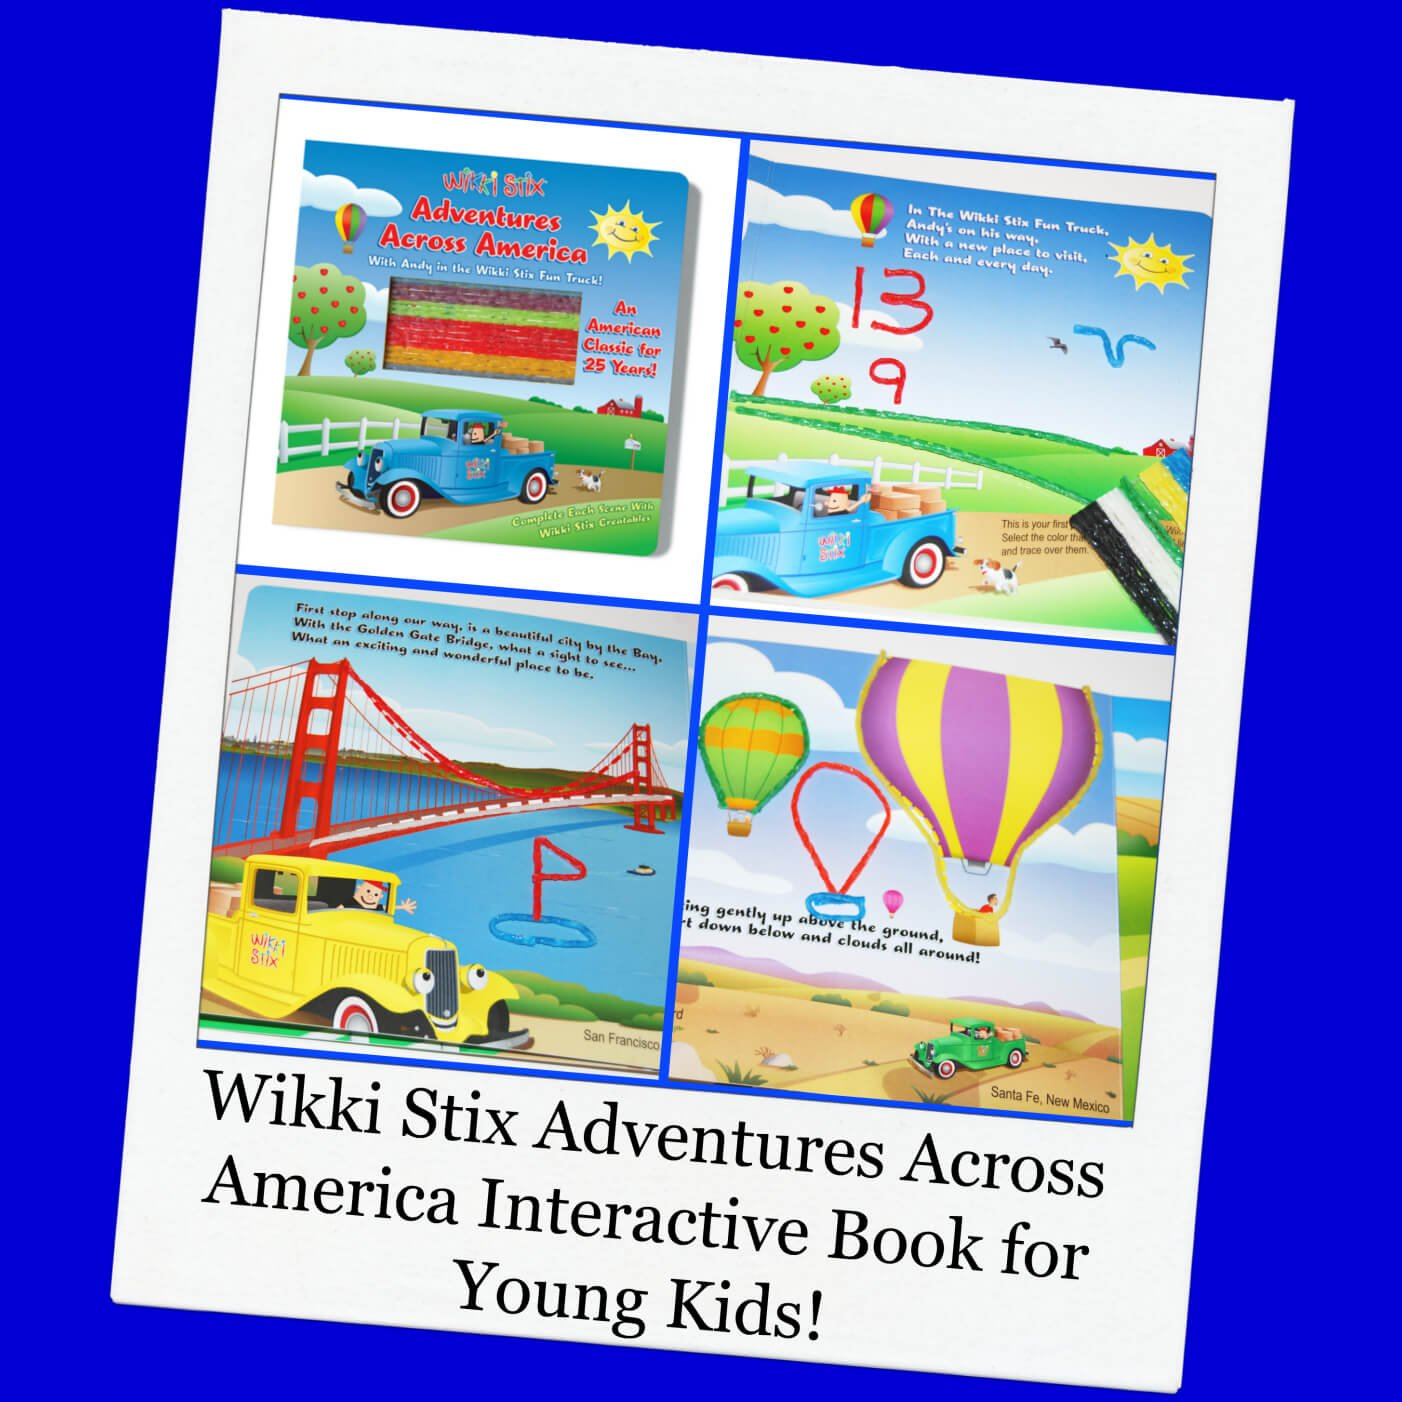 Interactive PLAY with the Wikki Stix Adventures Across America Book